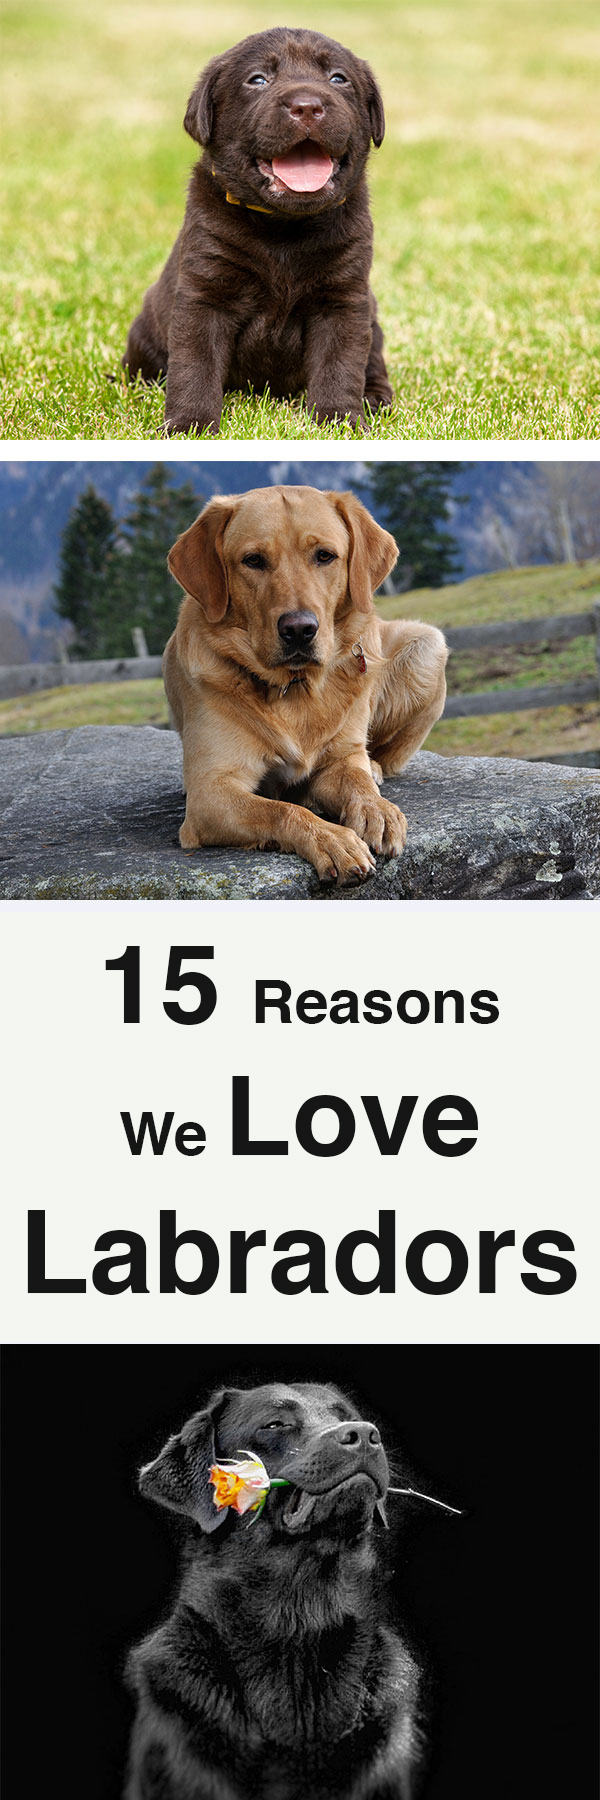 15 reasons we love labradors